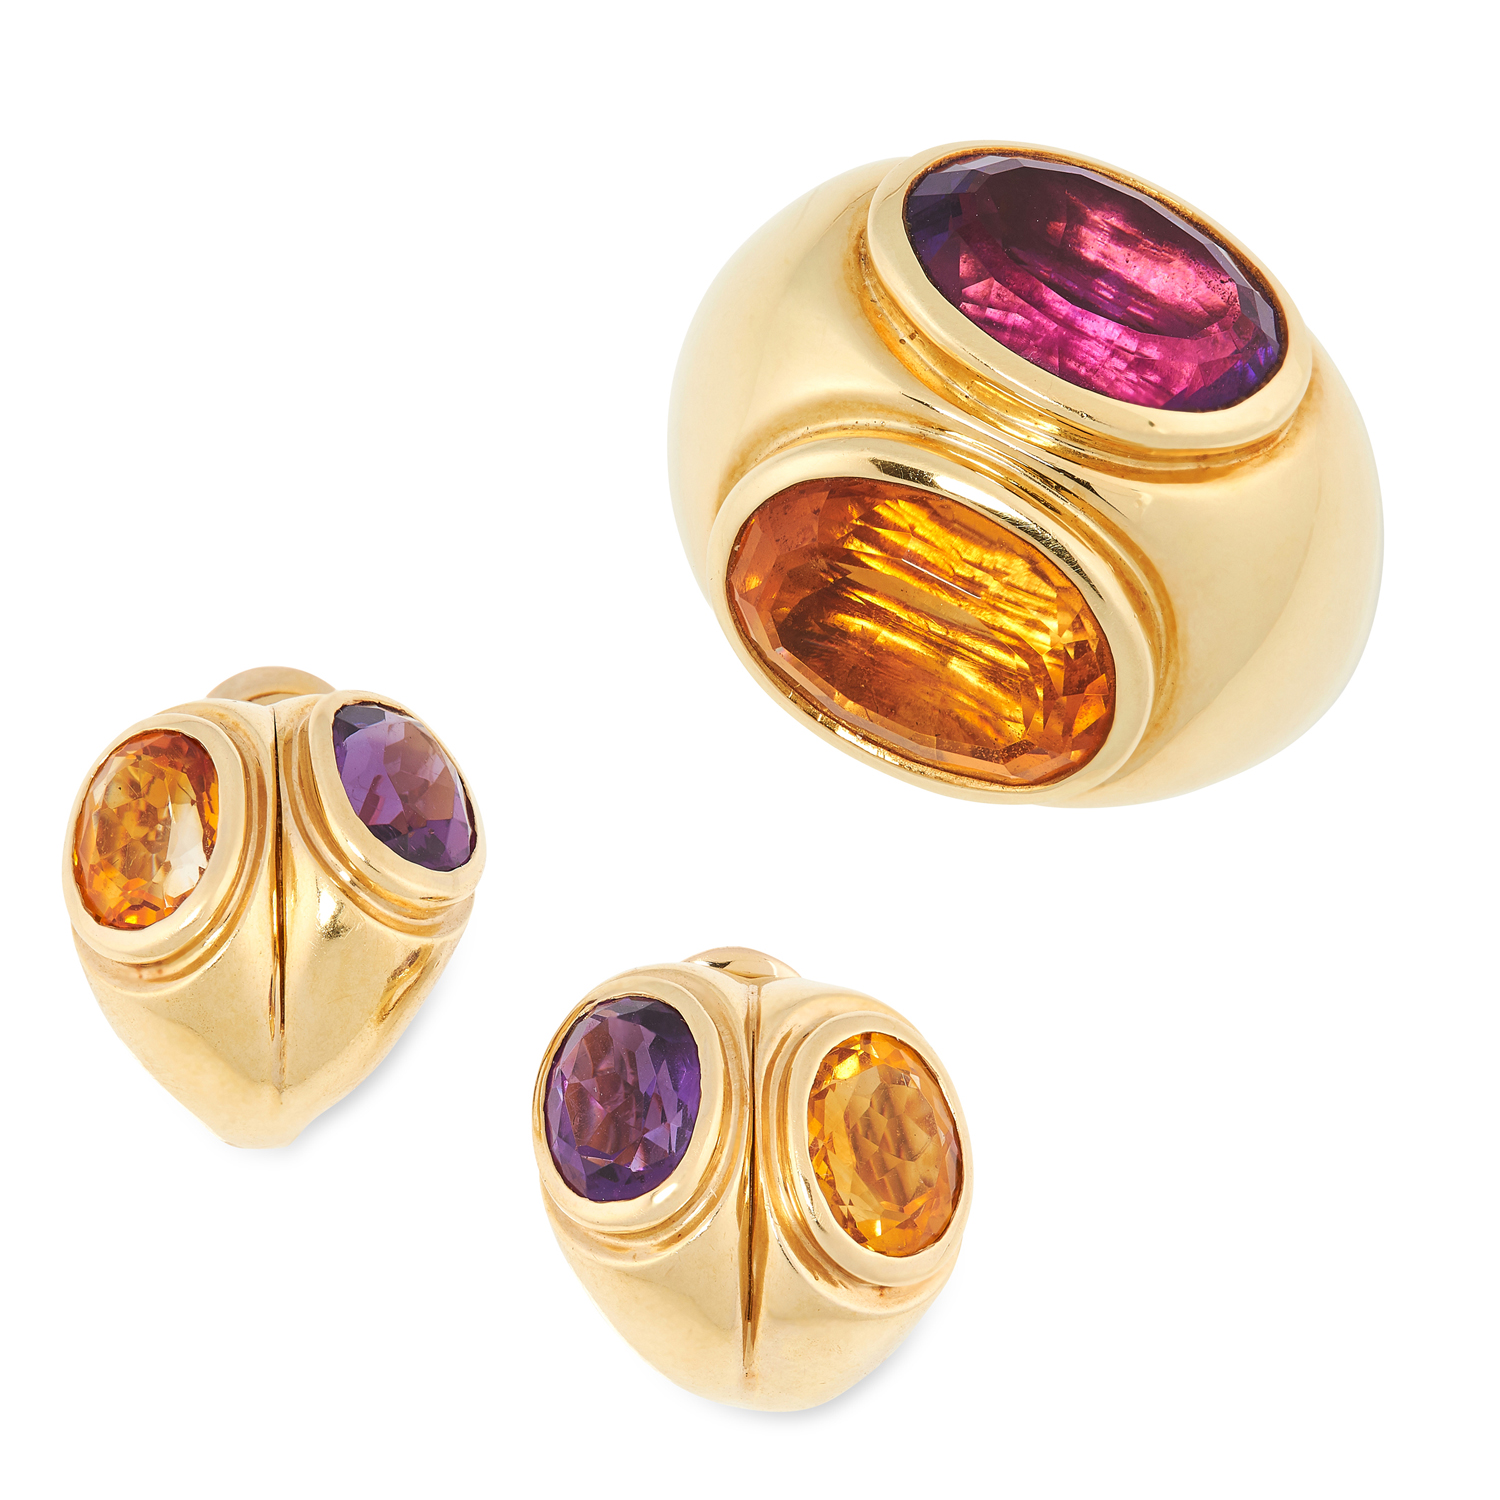 AN AMETHYST AND CITRINE RING AND EARRINGS SUITE, PARTLY BY TIFFANY & CO each set with oval cut